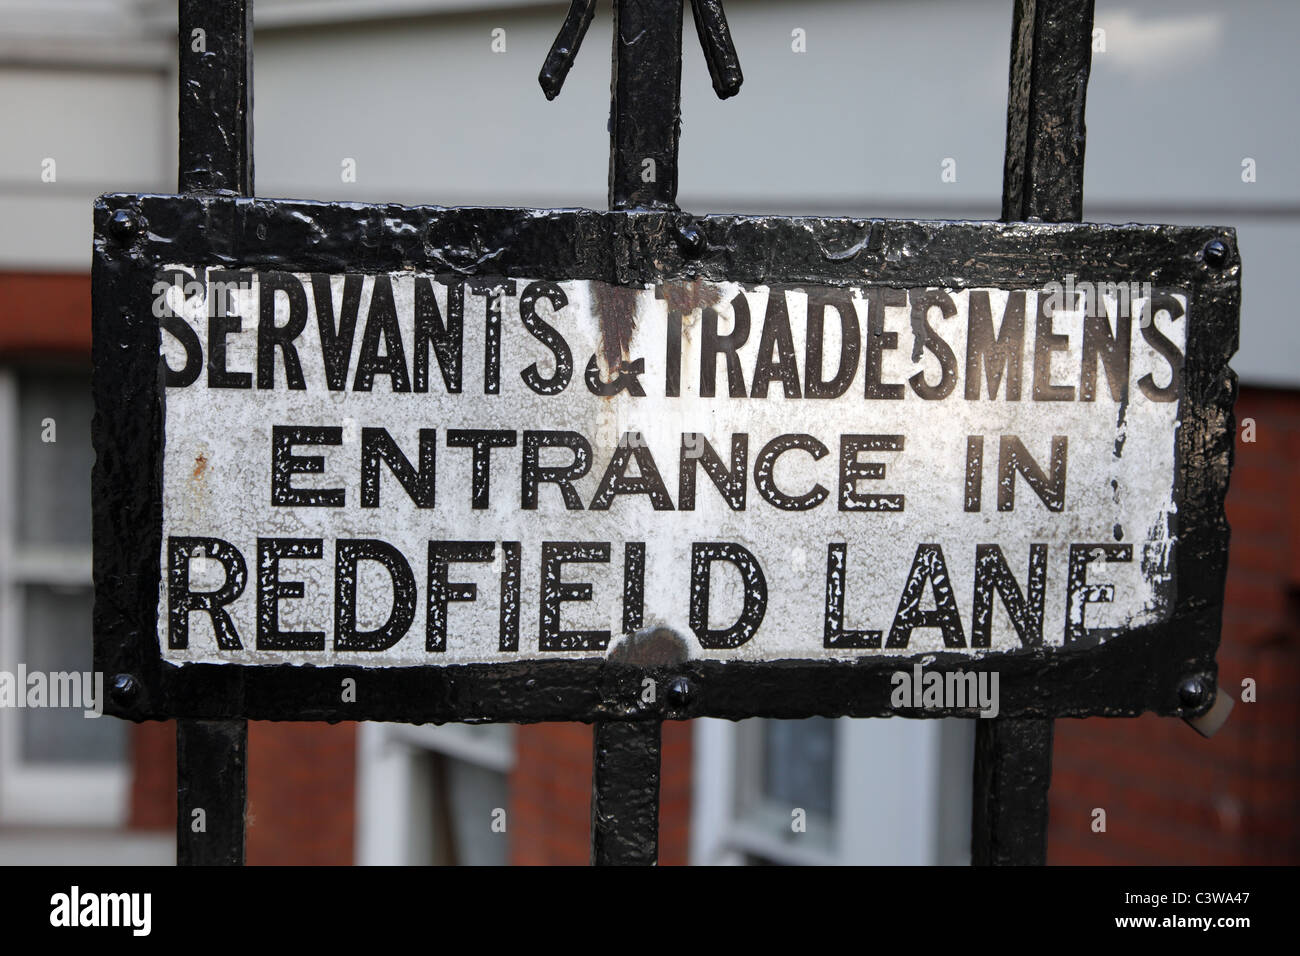 Servants and tradesmen entrance sign, mansion block, Cromwell Road, London - Stock Image